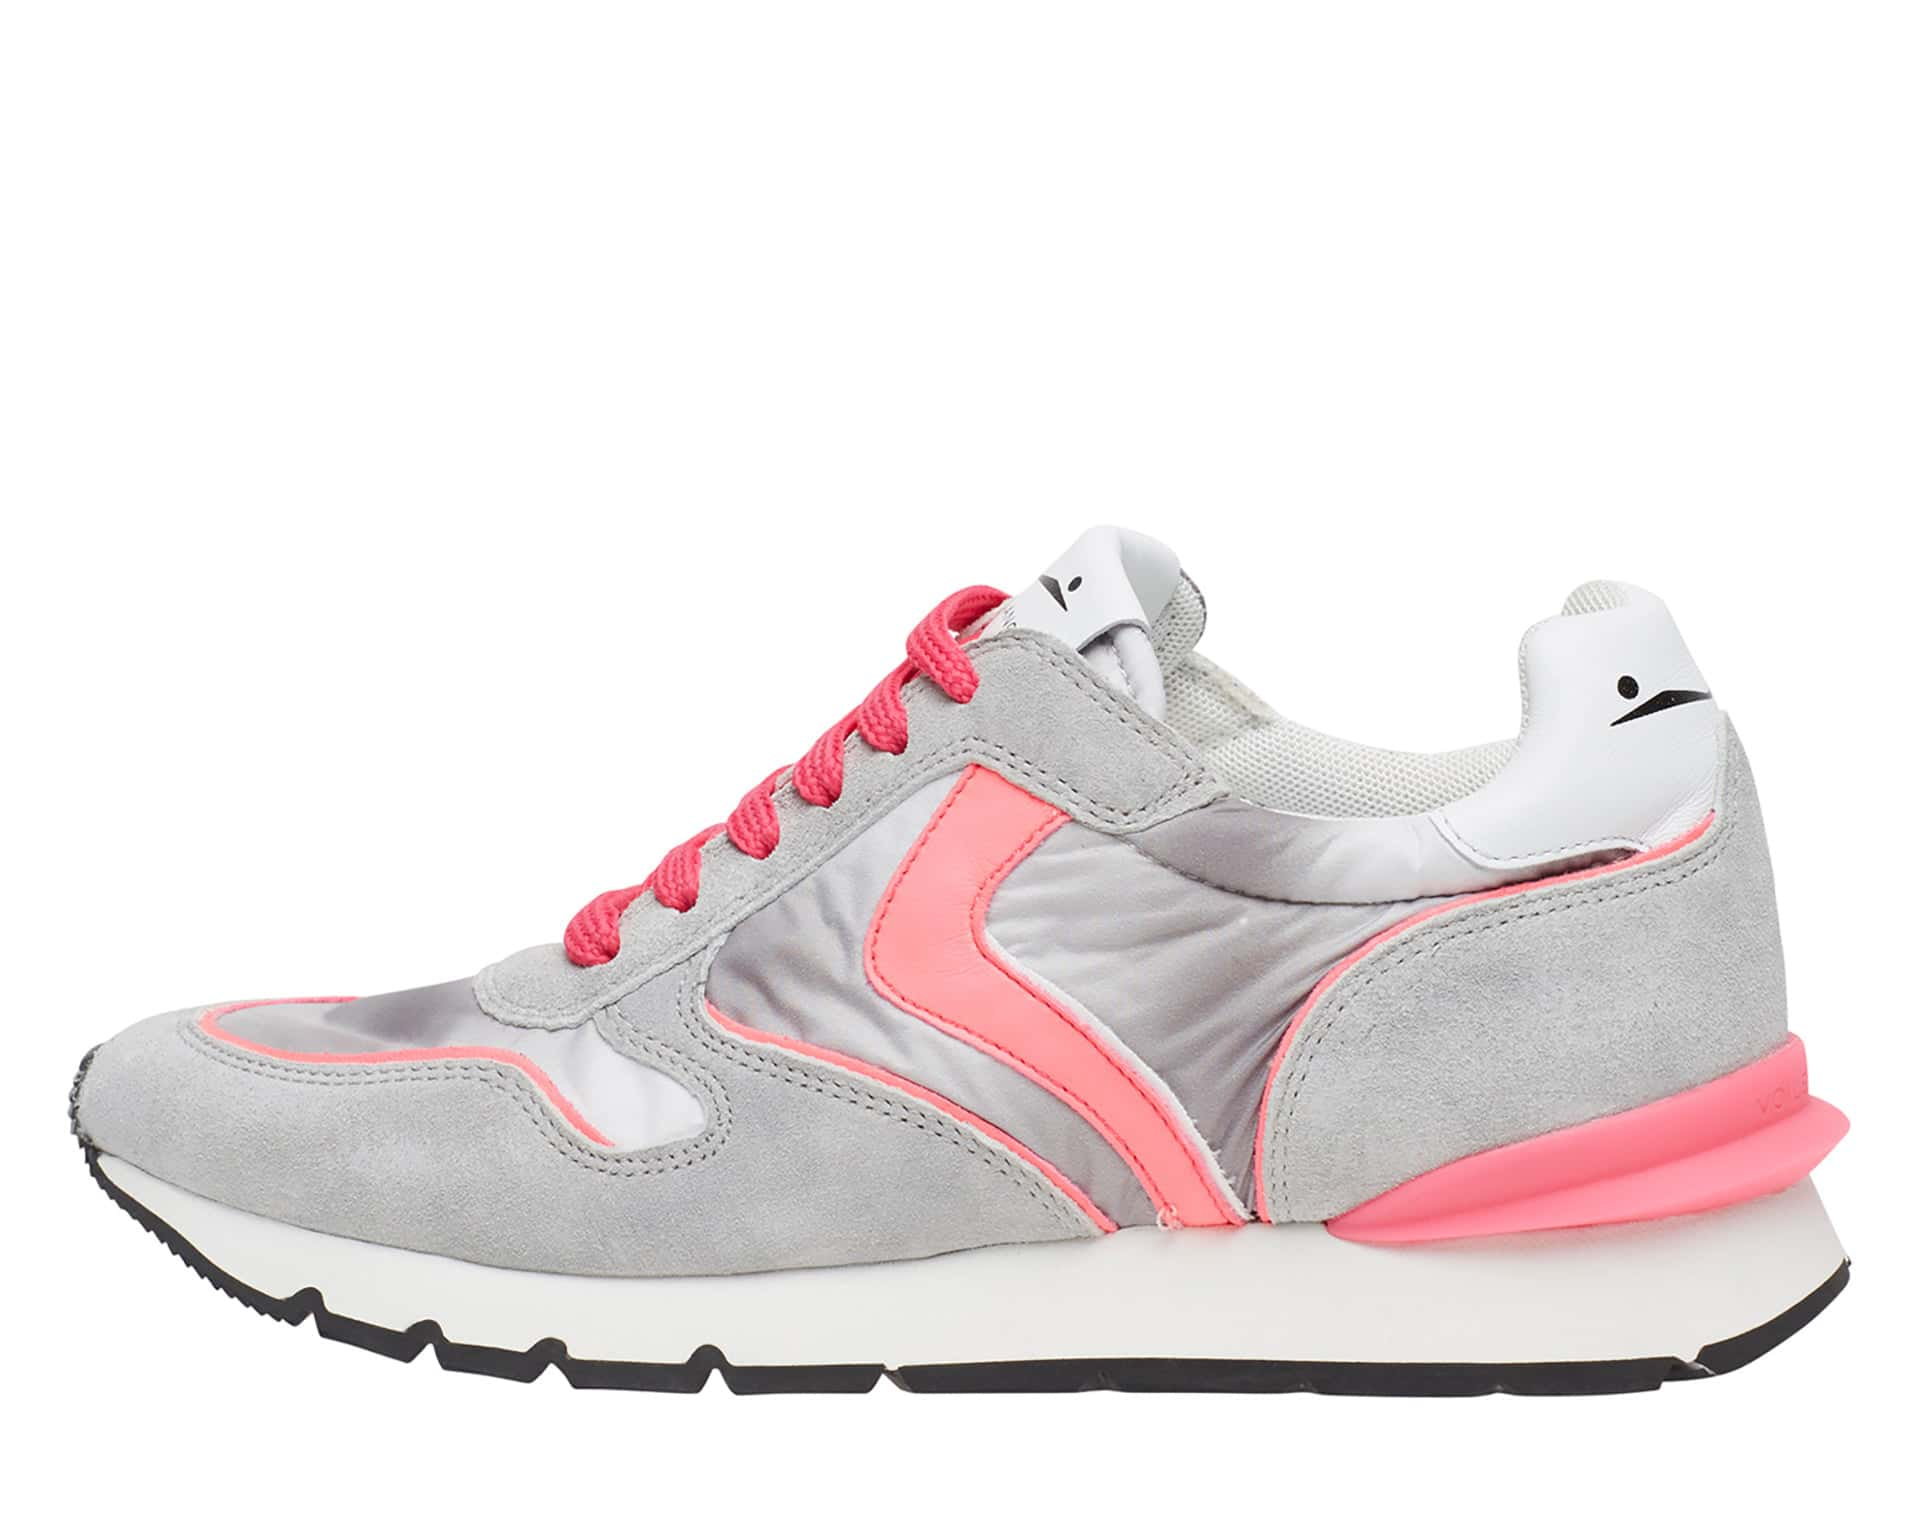 JULIA RACE - Sneakers in pelle e nylon - Giaccio/Rosa Fluo